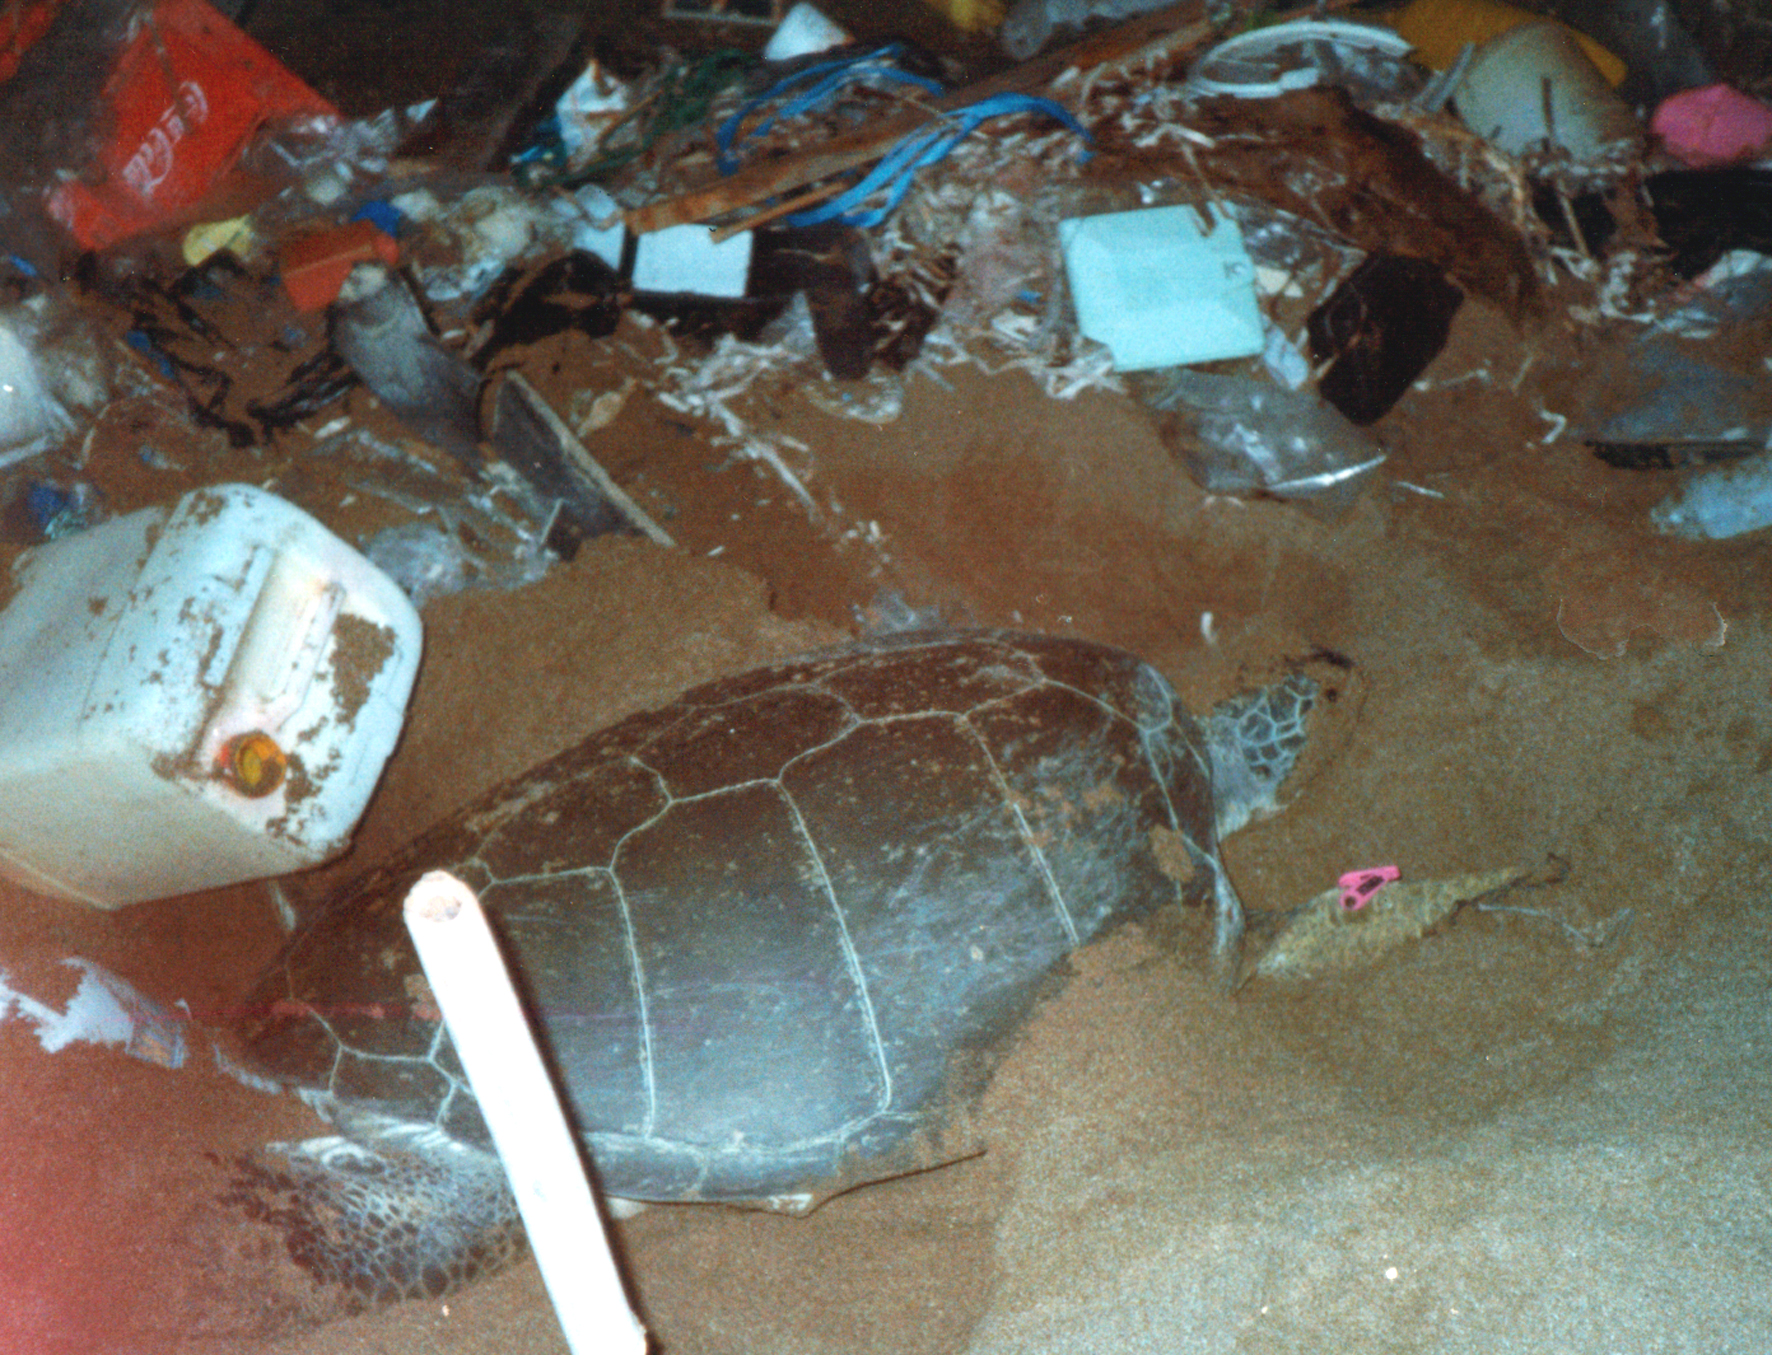 POTD: Green turtle attempting (and failing) to nest in rubbish on Alagadi Beach, Cyprus myd.as/p4014